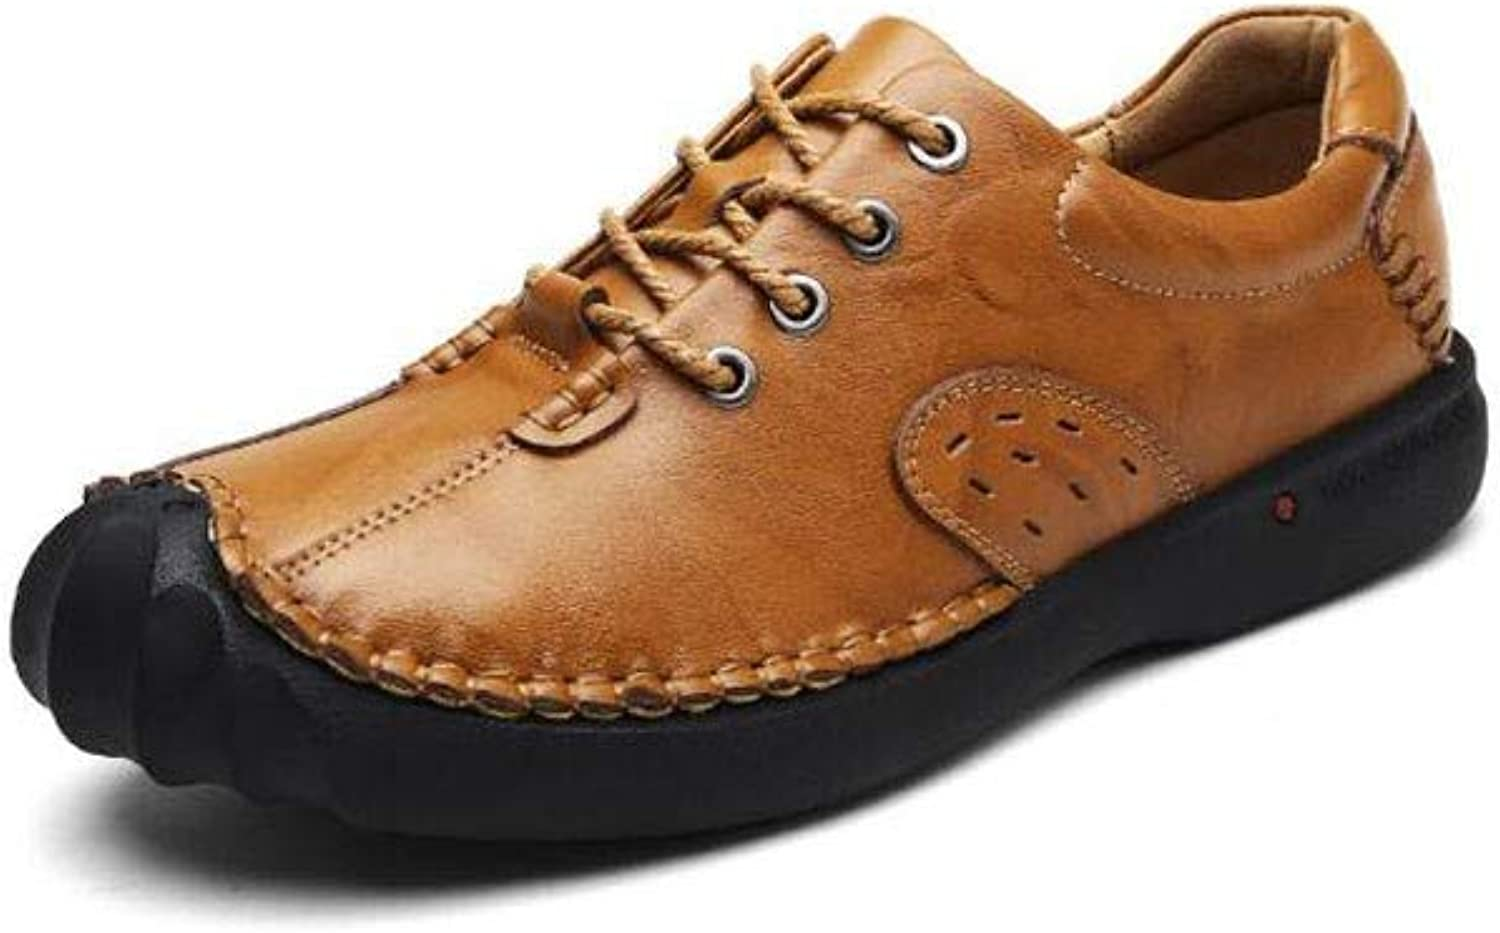 Jiang-ZX Men's shoes,Casual shoes Large Size Breathable shoes British Trend Leather Handmade shoes